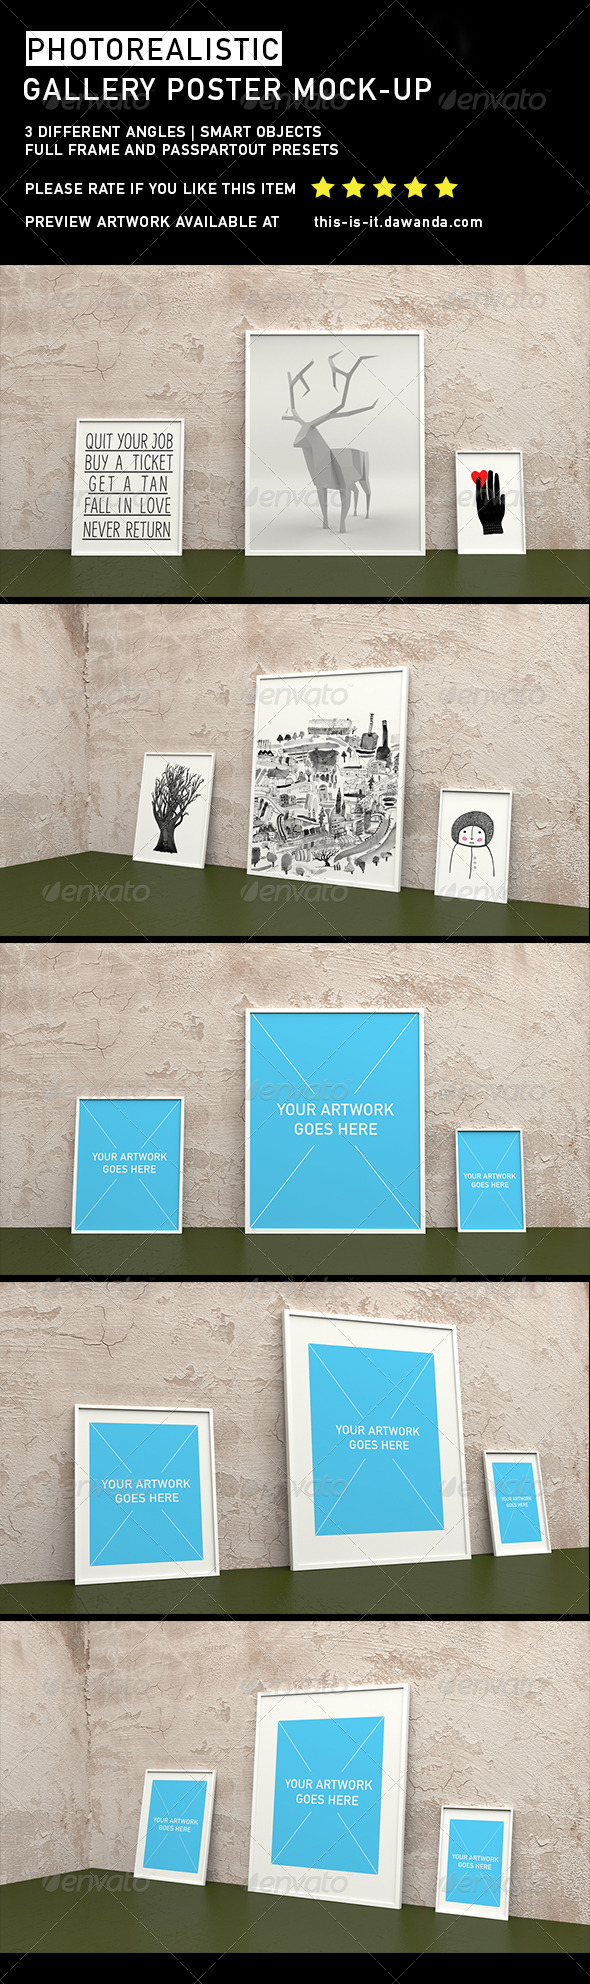 GraphicRiver Photorealistic Gallery Poster Mock-Up 2 6721779